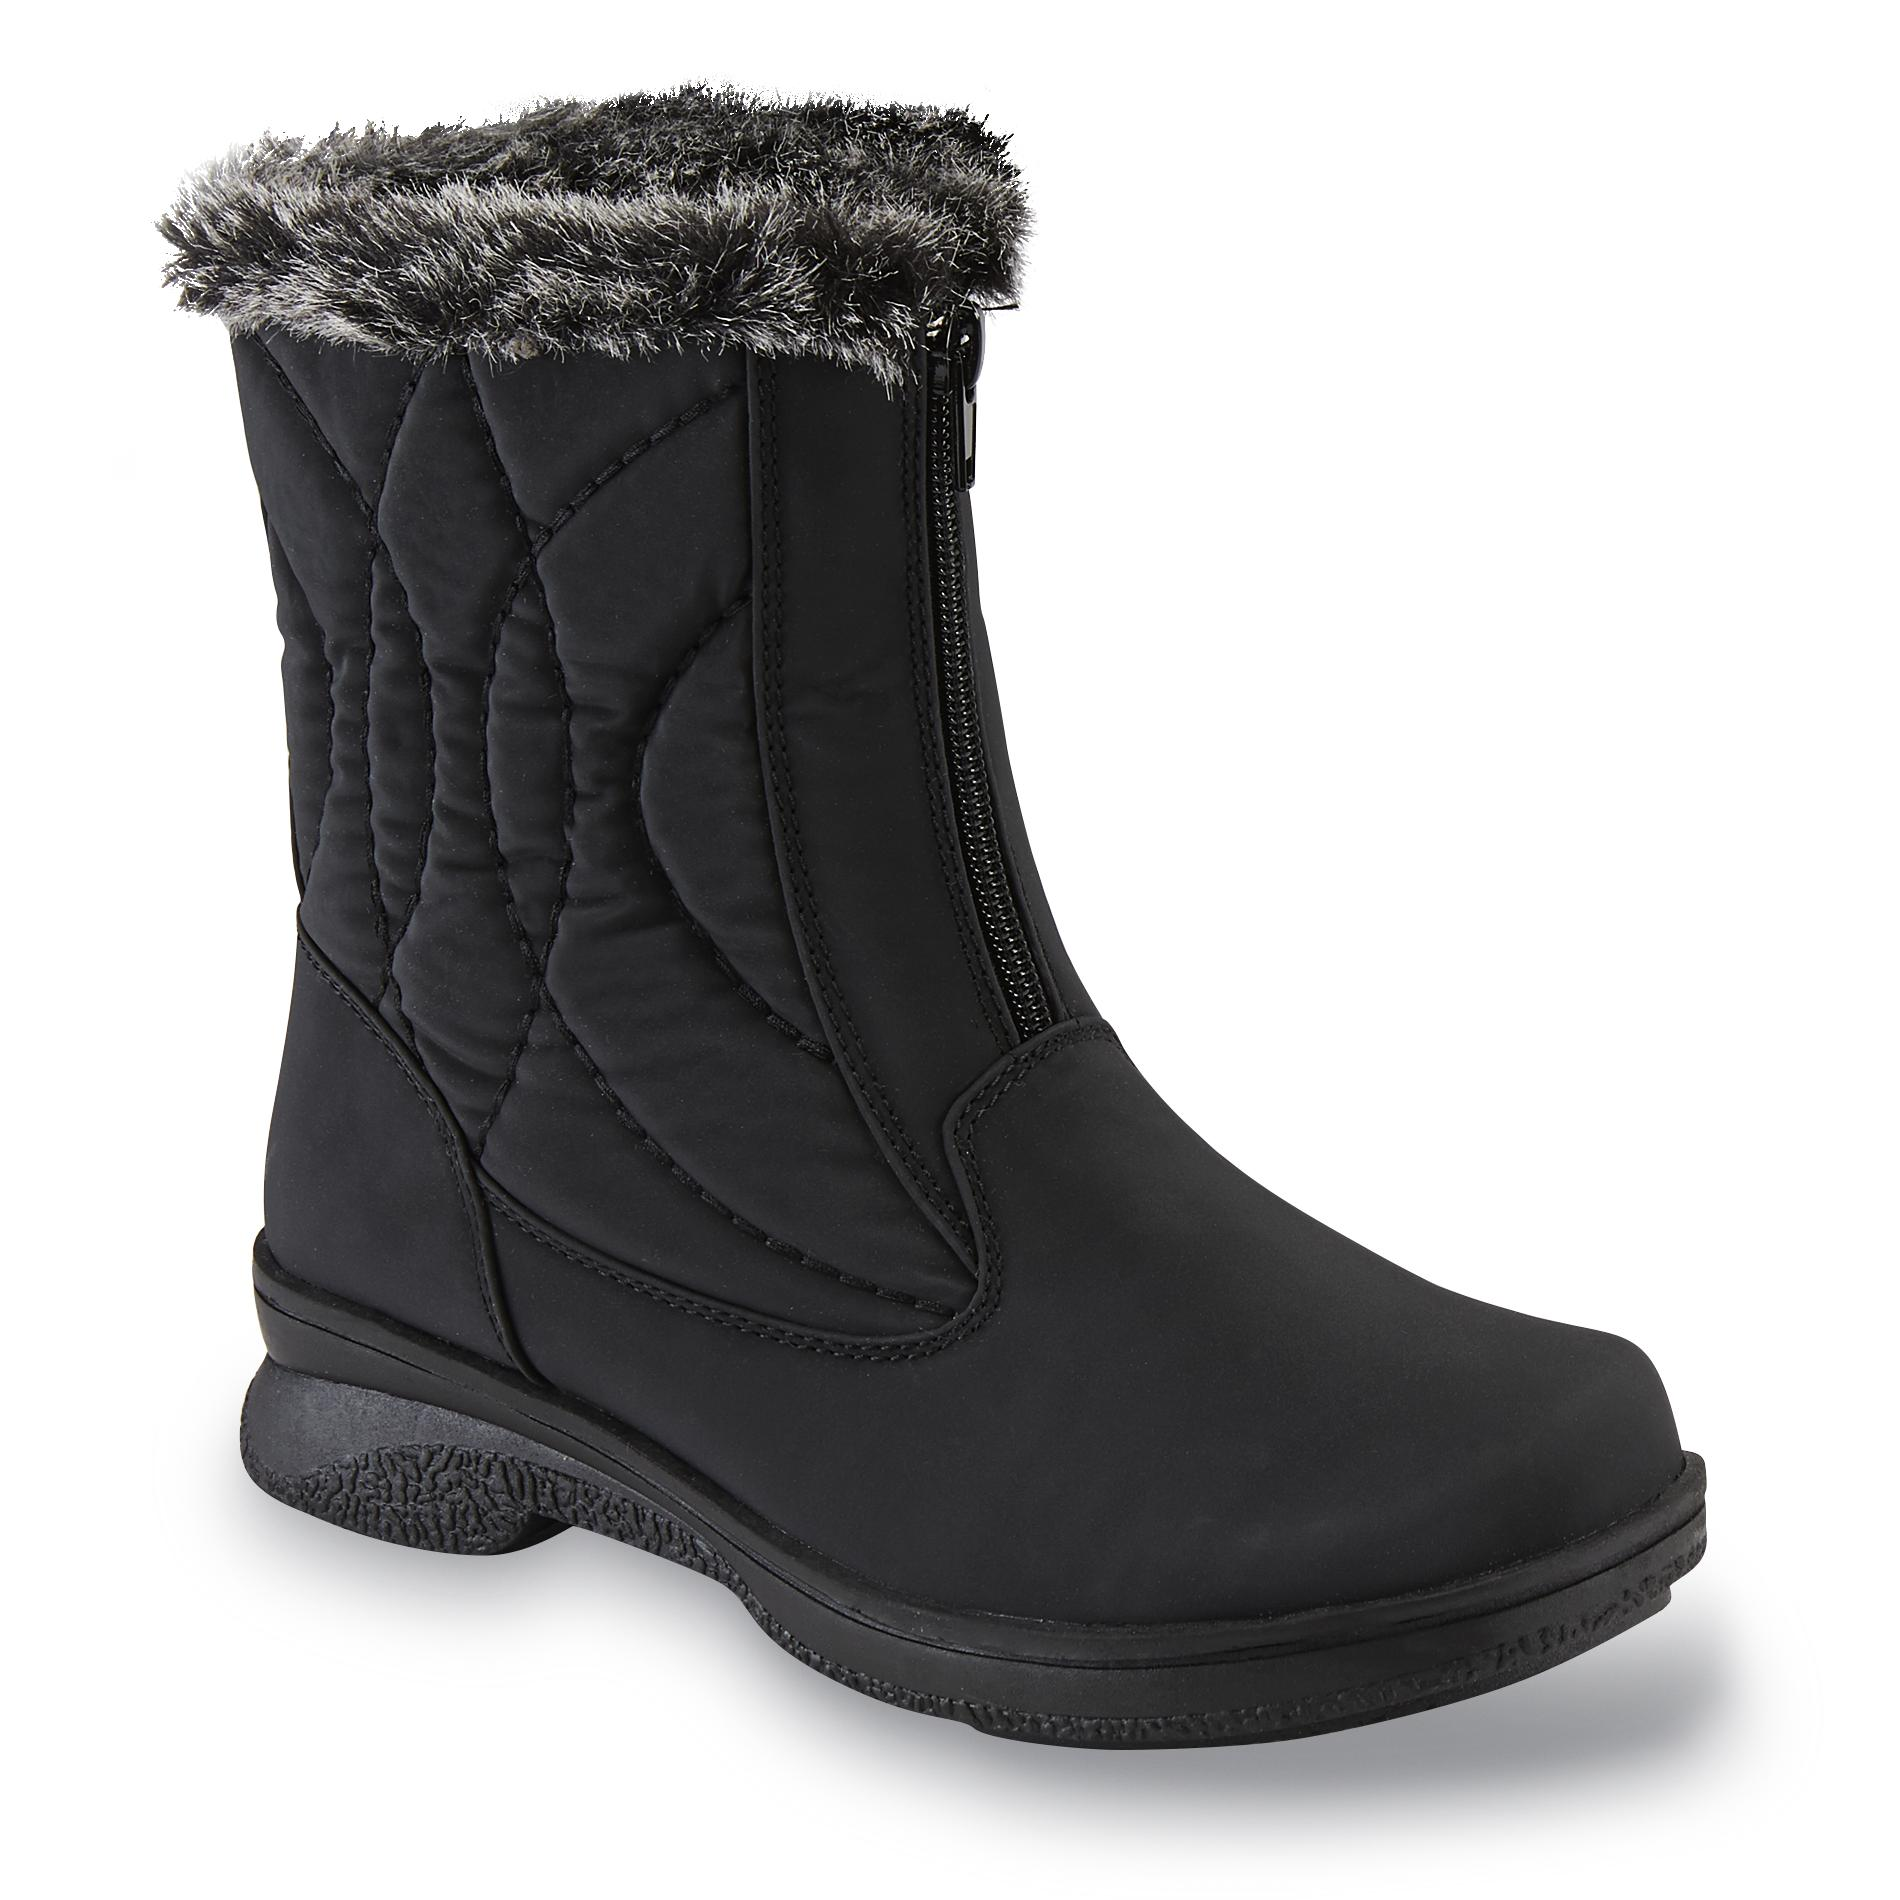 Womens Wide Winter Snow Boots oQzGgF4L